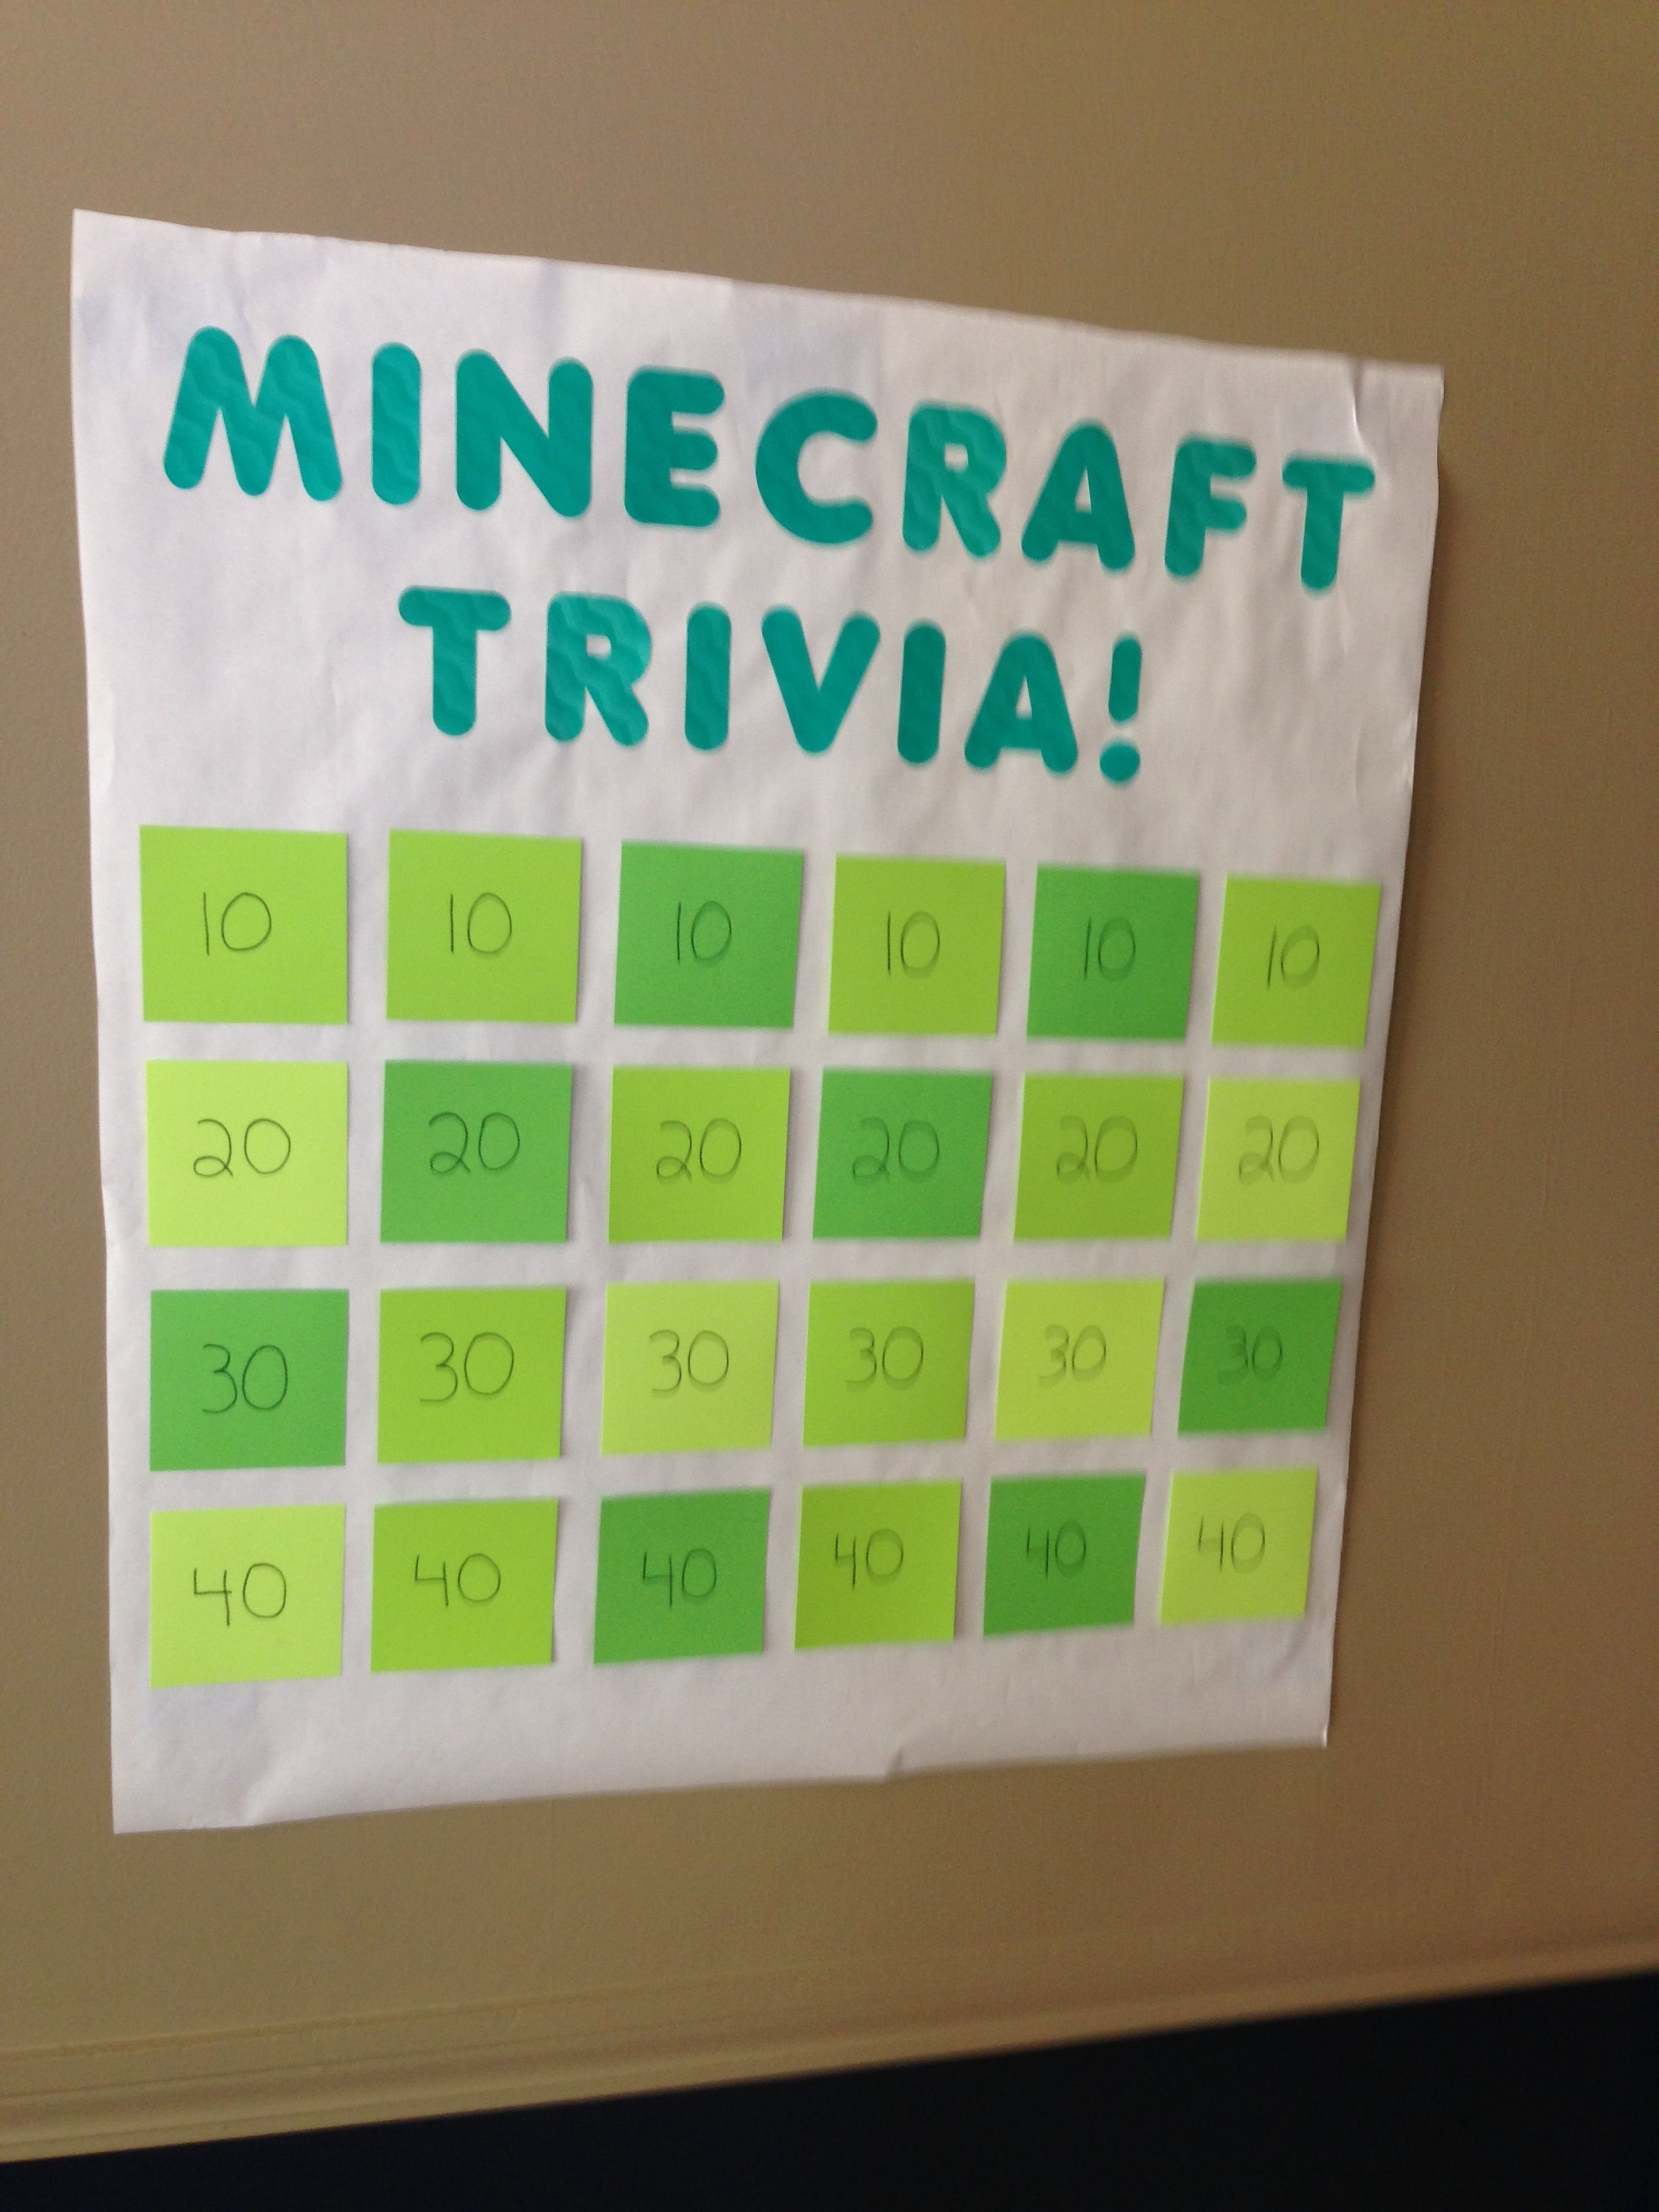 Minecraft trivia - this was interesting, the kids knew so